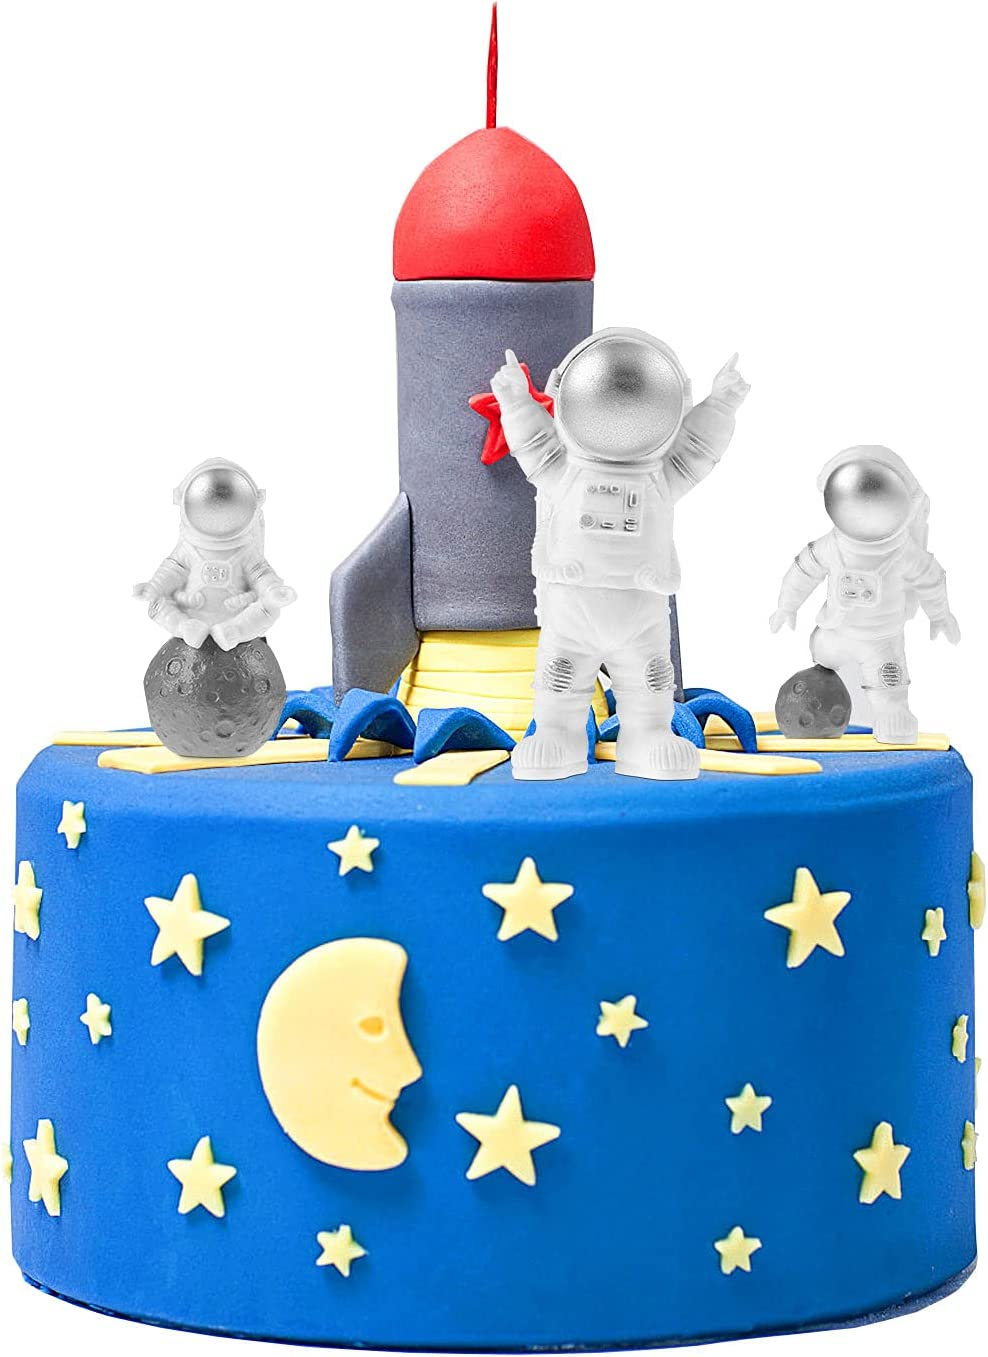 BESTOYARD Outer Space Themed Cake Topper Decor Astronaut Party Decorations Astronaut Figurines Toys Boys Kids Room Bedroom Car Dashboard Decor 3pcs